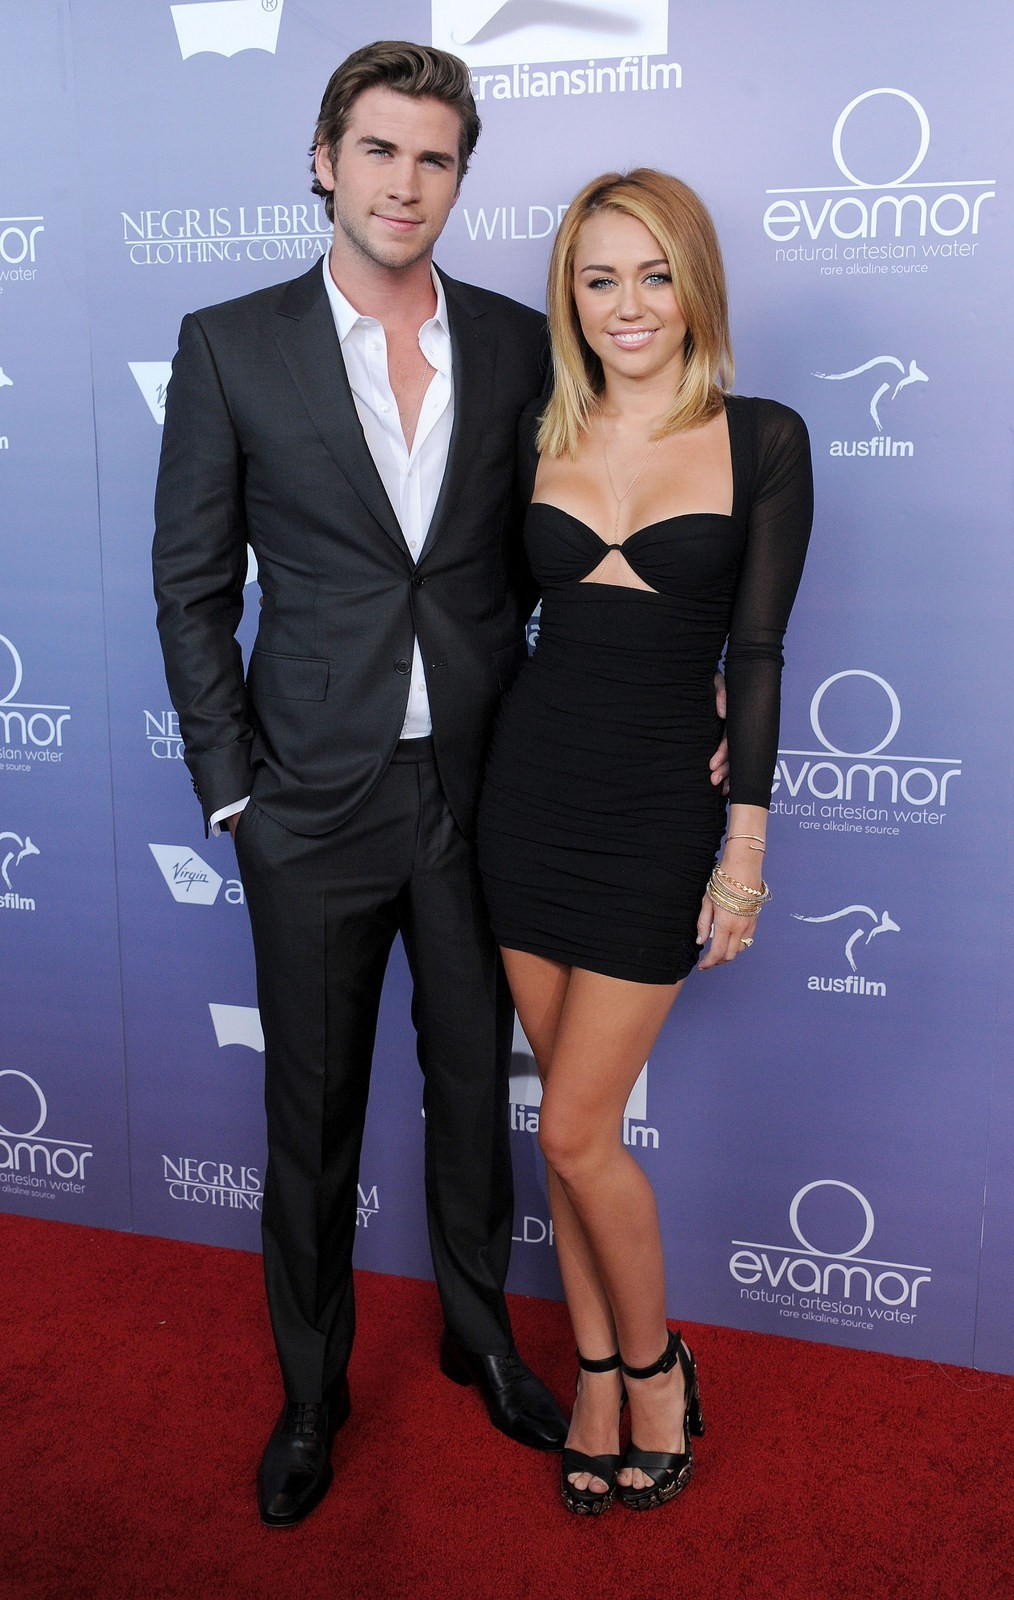 Miley Cyrus liam hemsworth film awards